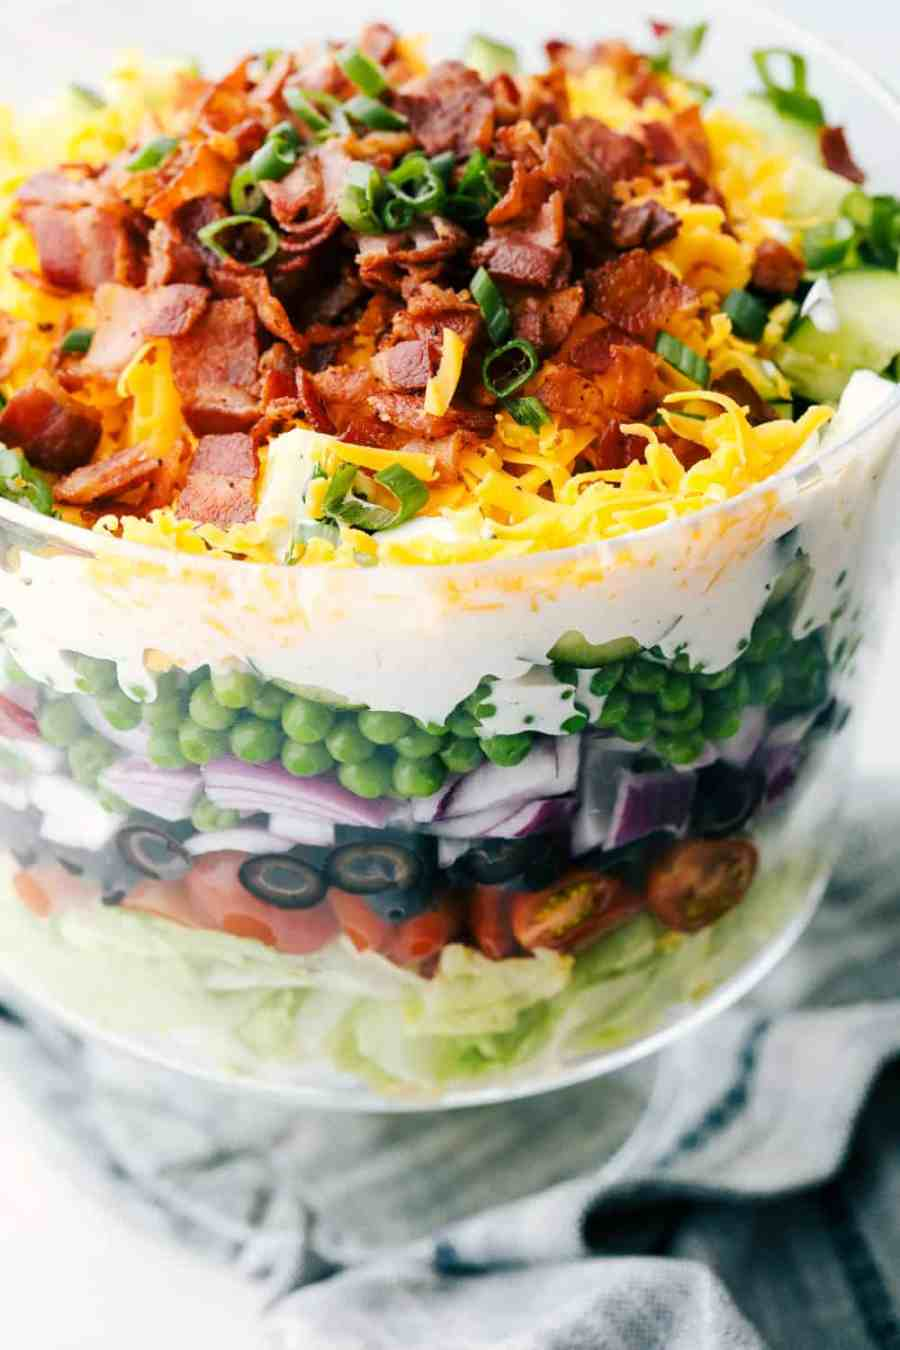 Upclose picture of the salad in a glass bowl.